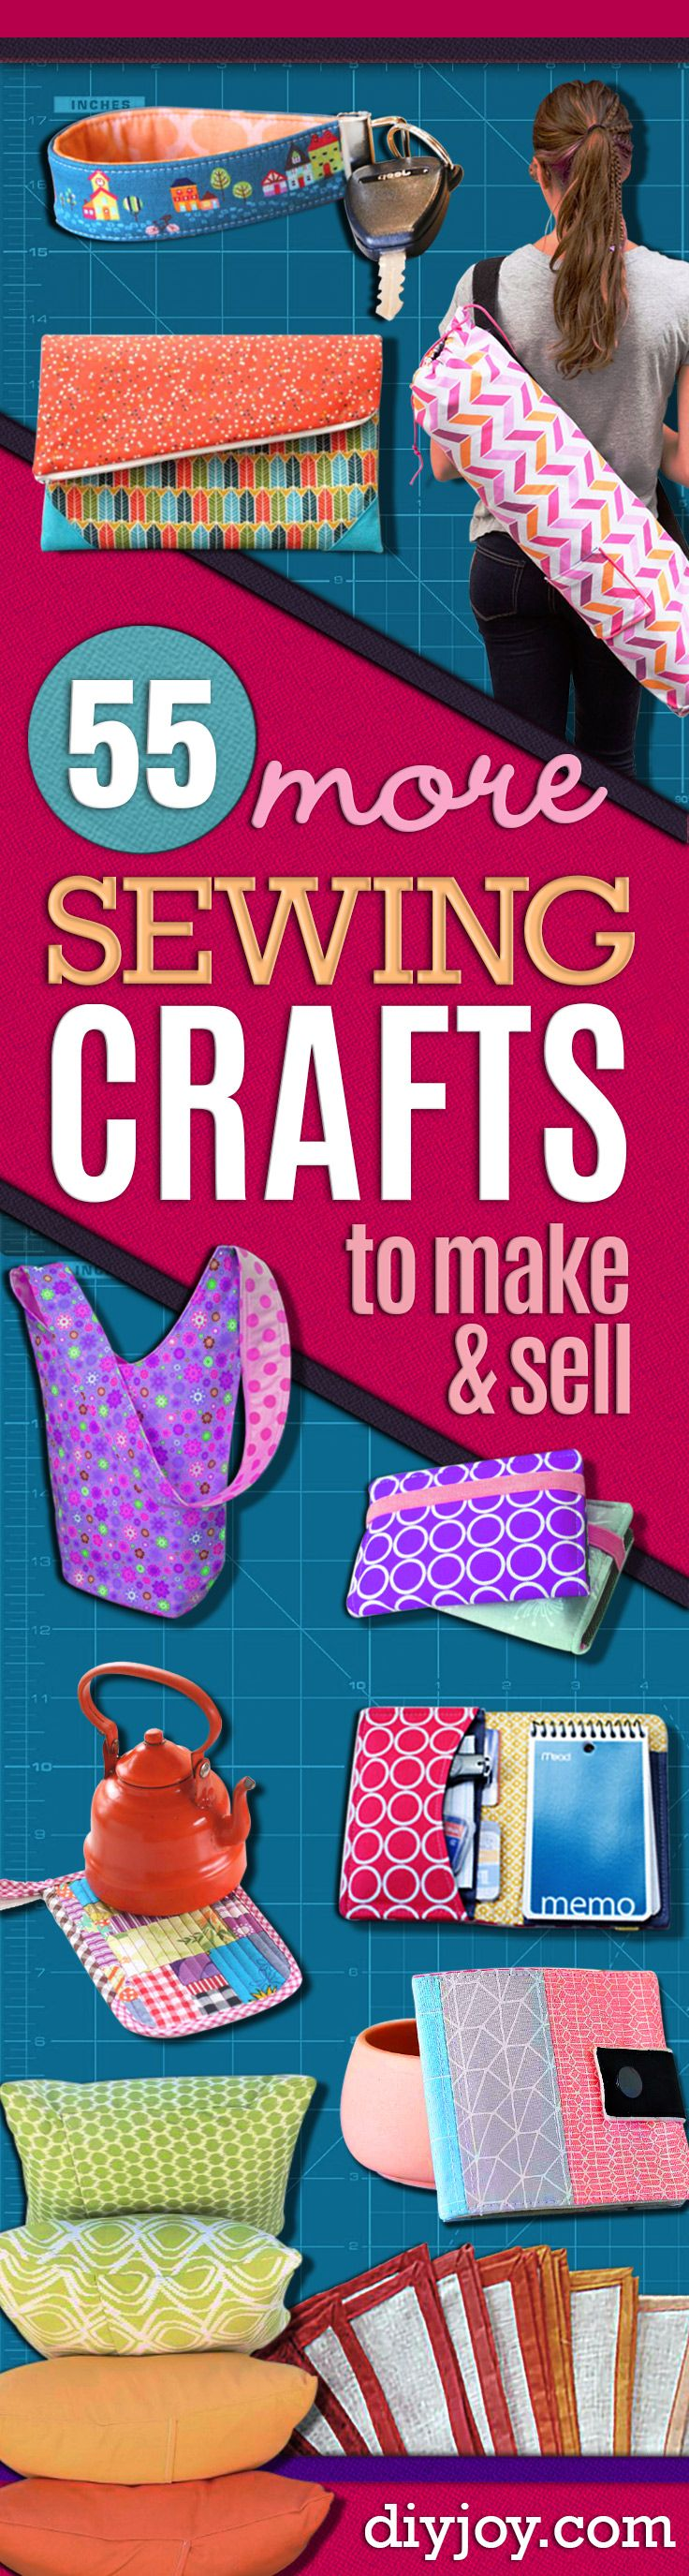 16++ Christmas sewing crafts to make and sell ideas in 2021